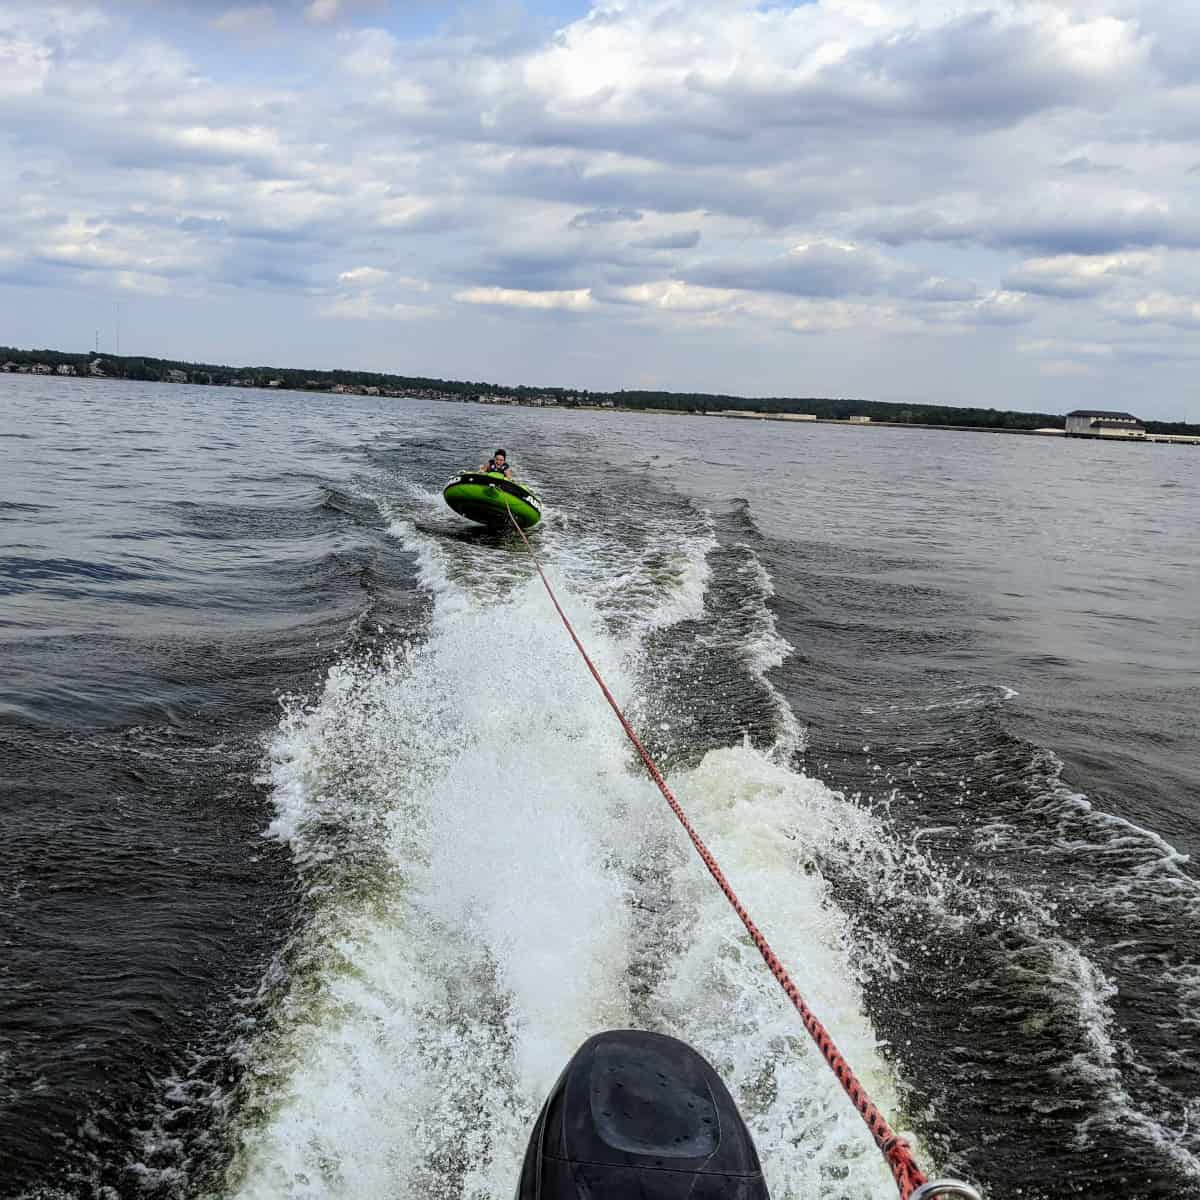 Margaritaville Lake Conroe Watercraft Rental